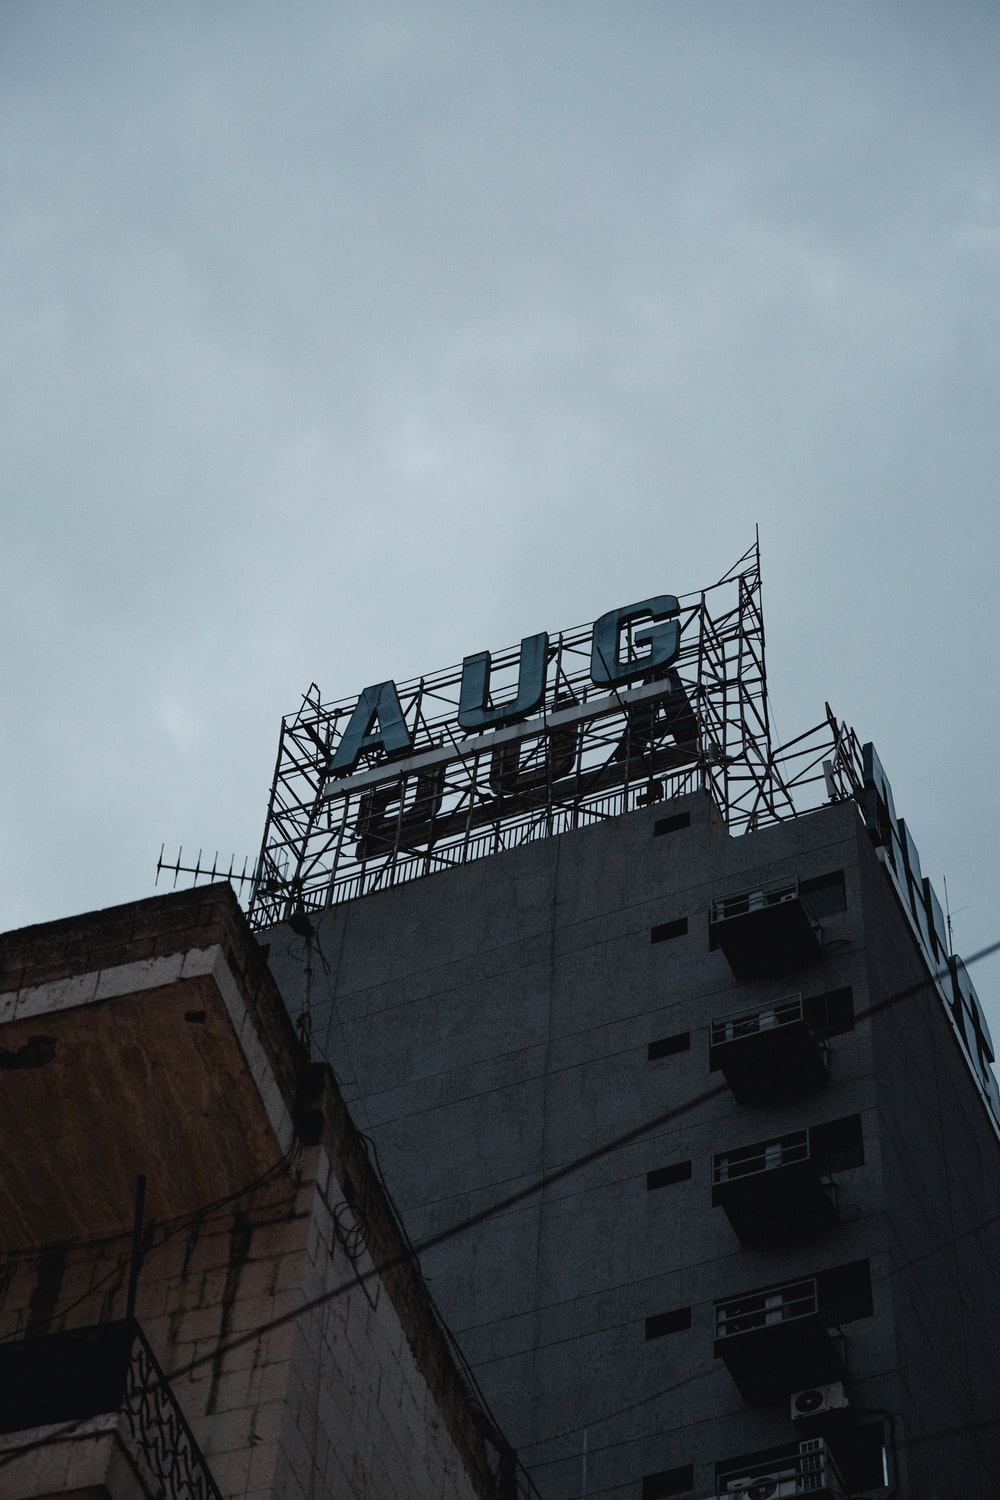 A.U.G. building during daytime